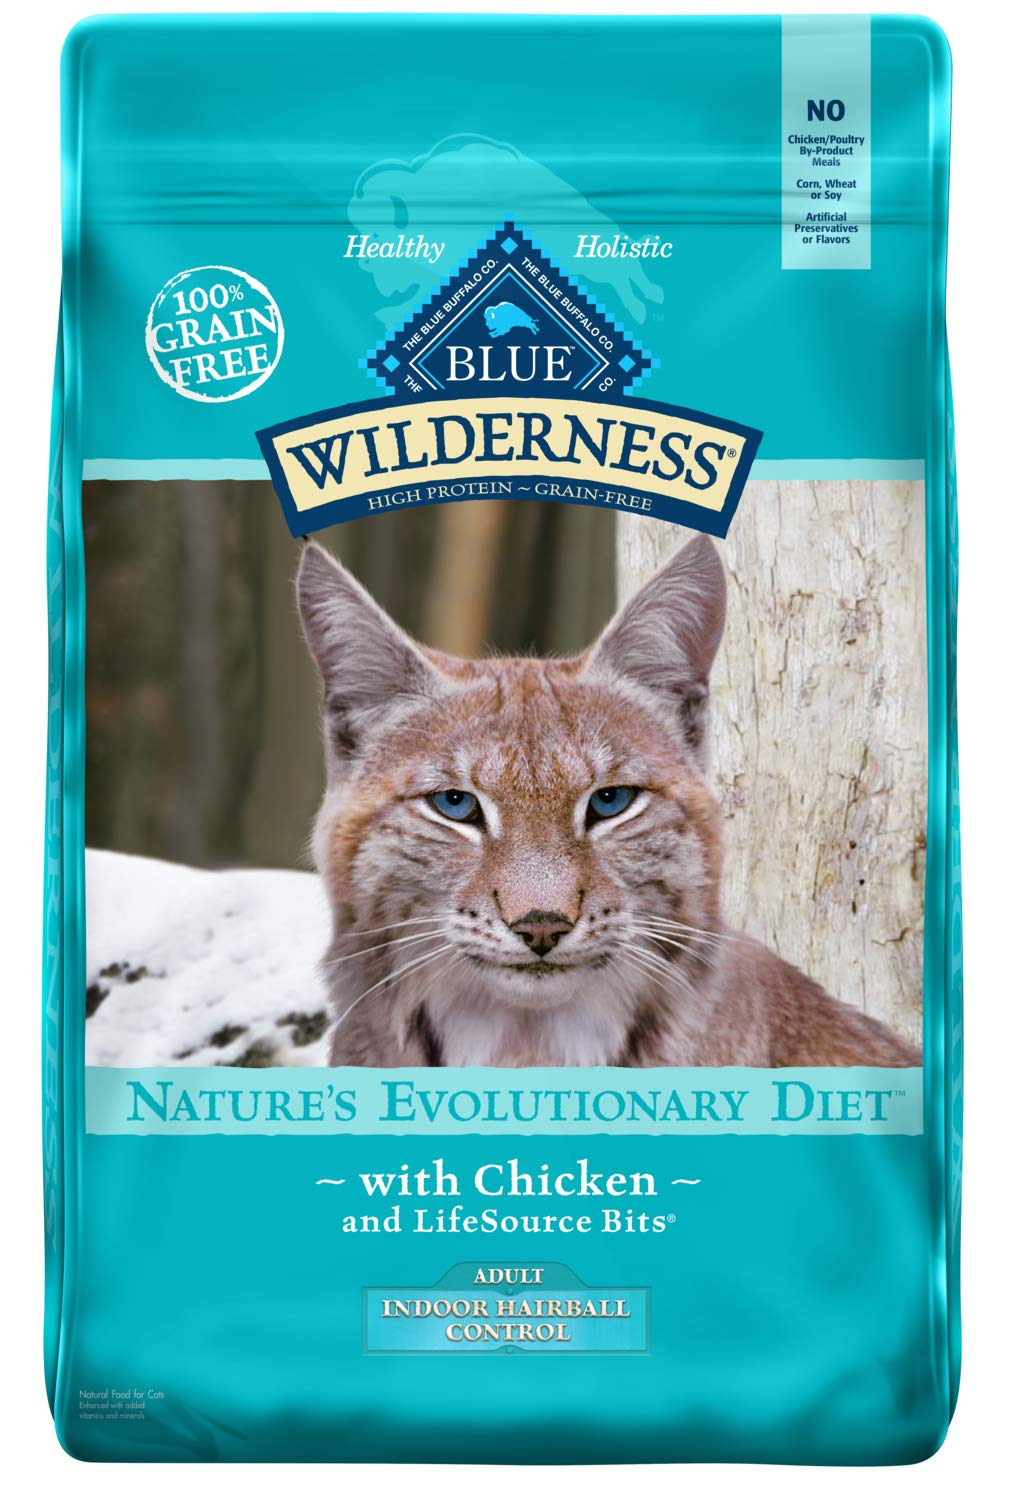 Blue Buffalo Wilderness High Protein Grain Free, Natural Adult Indoor Hairball Control Dry Cat Food, Chicken 11-lb by BLUE BUFFALO